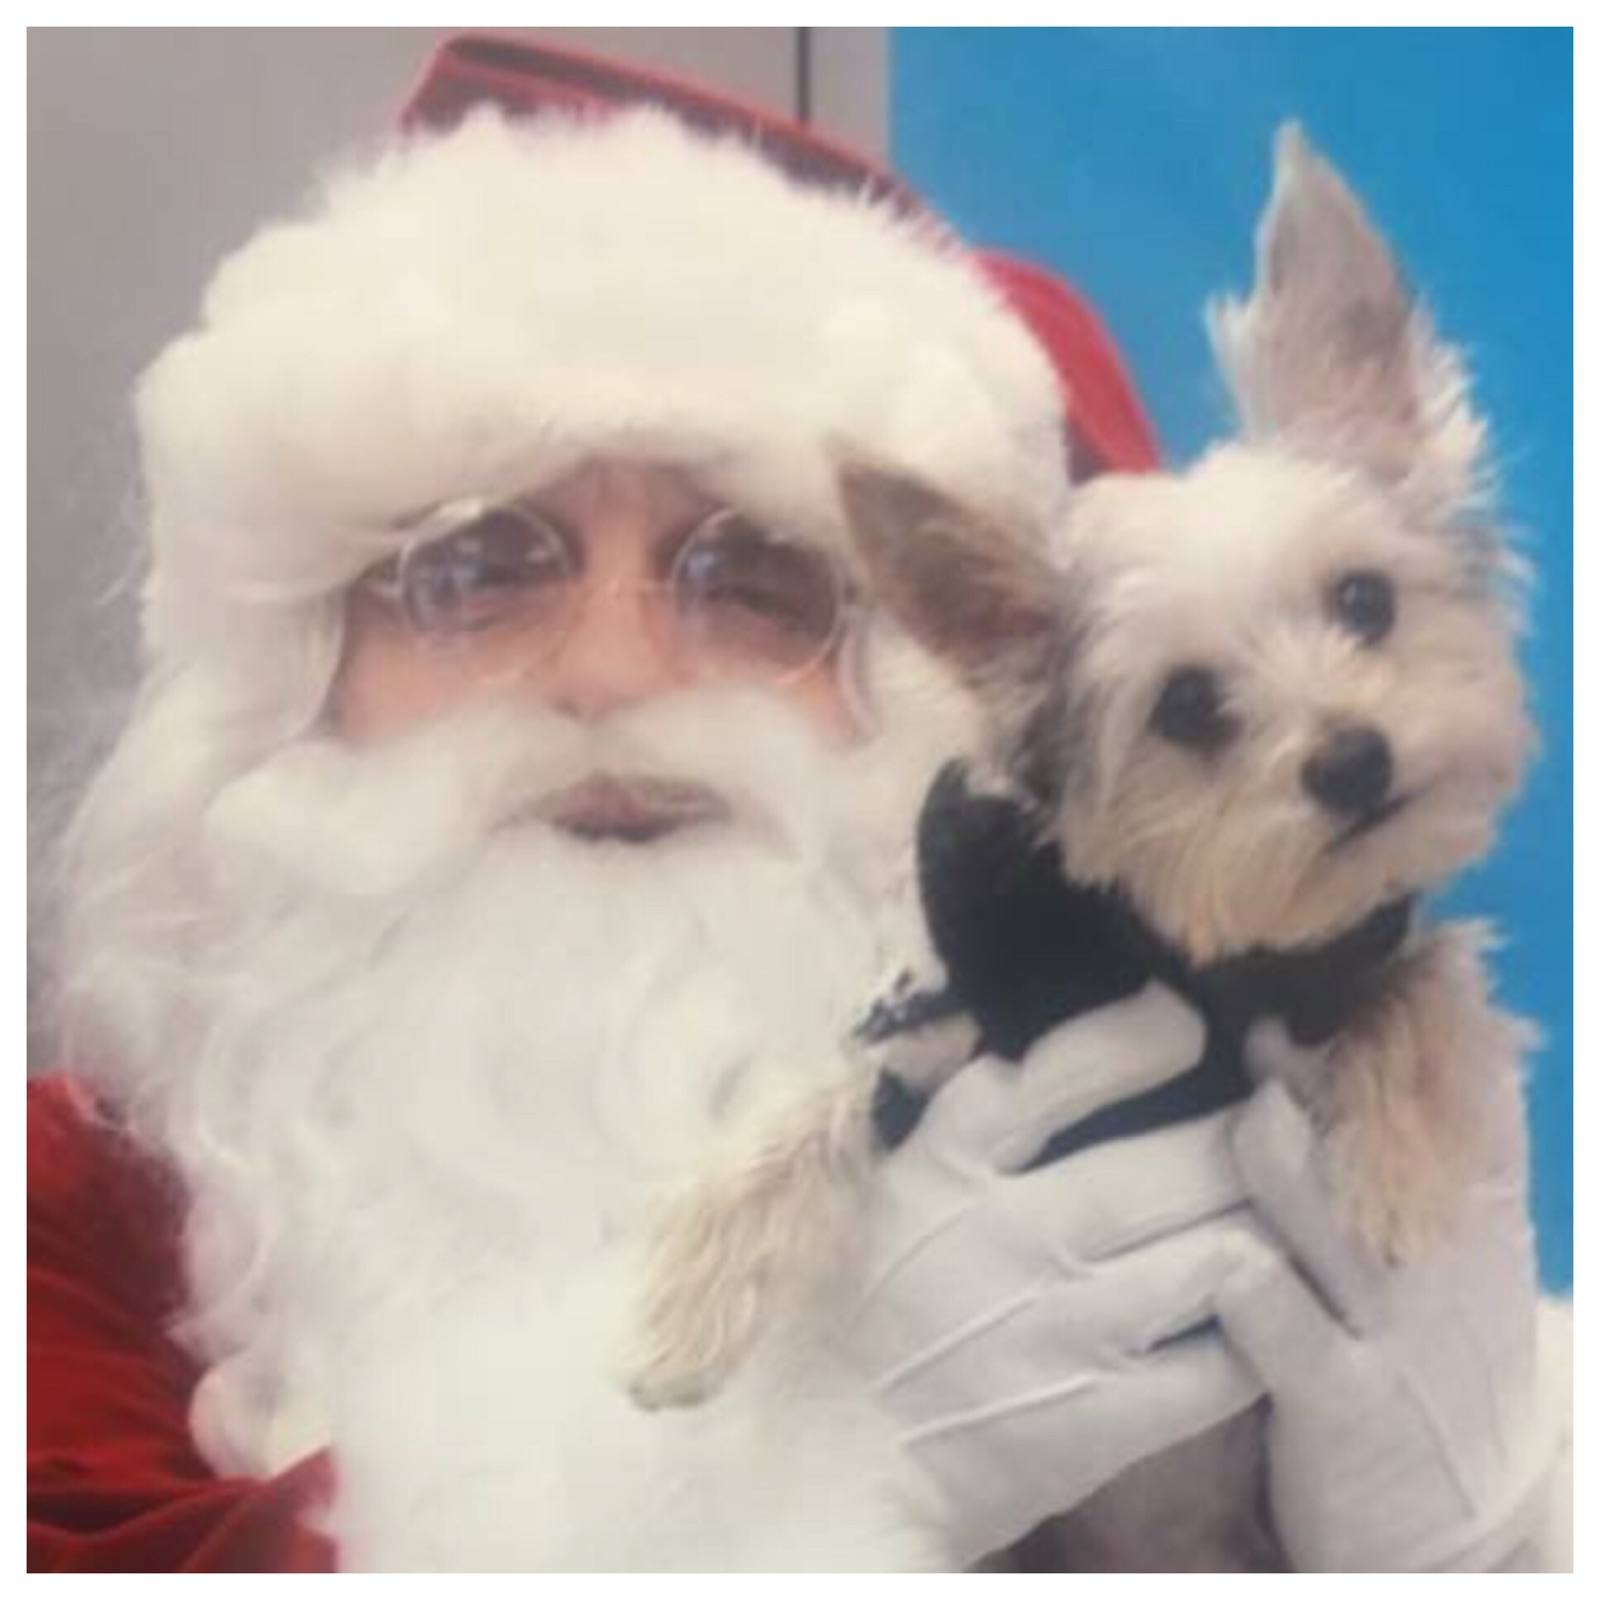 Santa with dog image